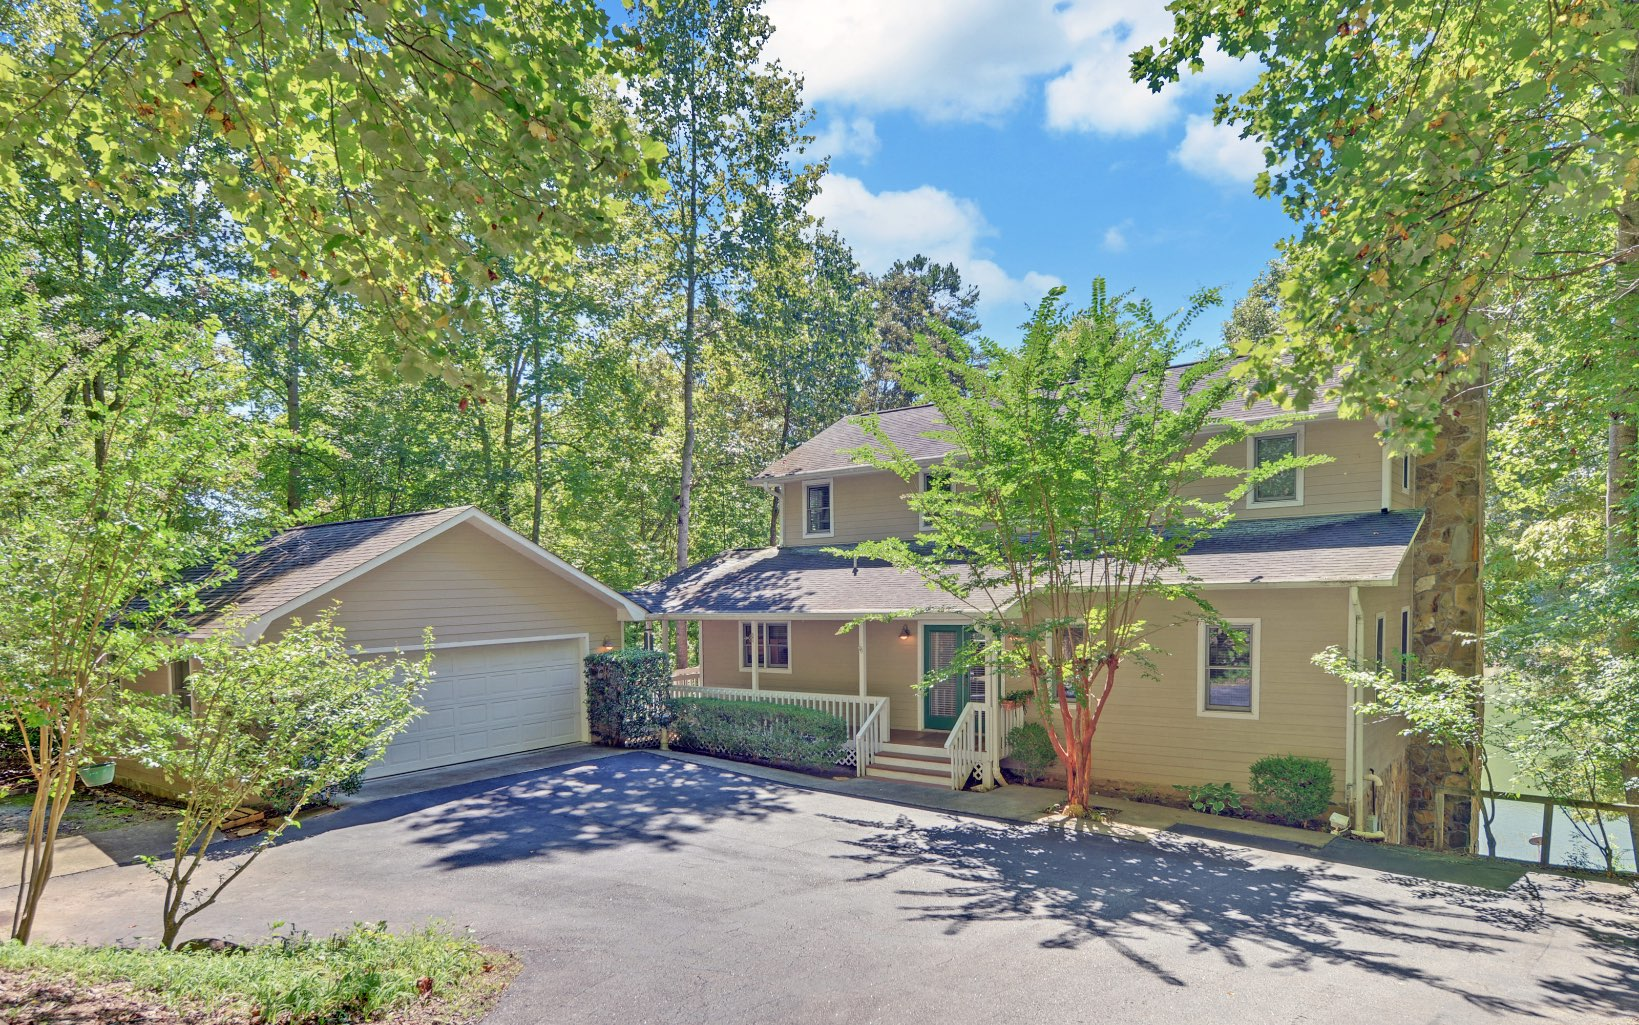 476 PINEY POINT ROAD Photo 1